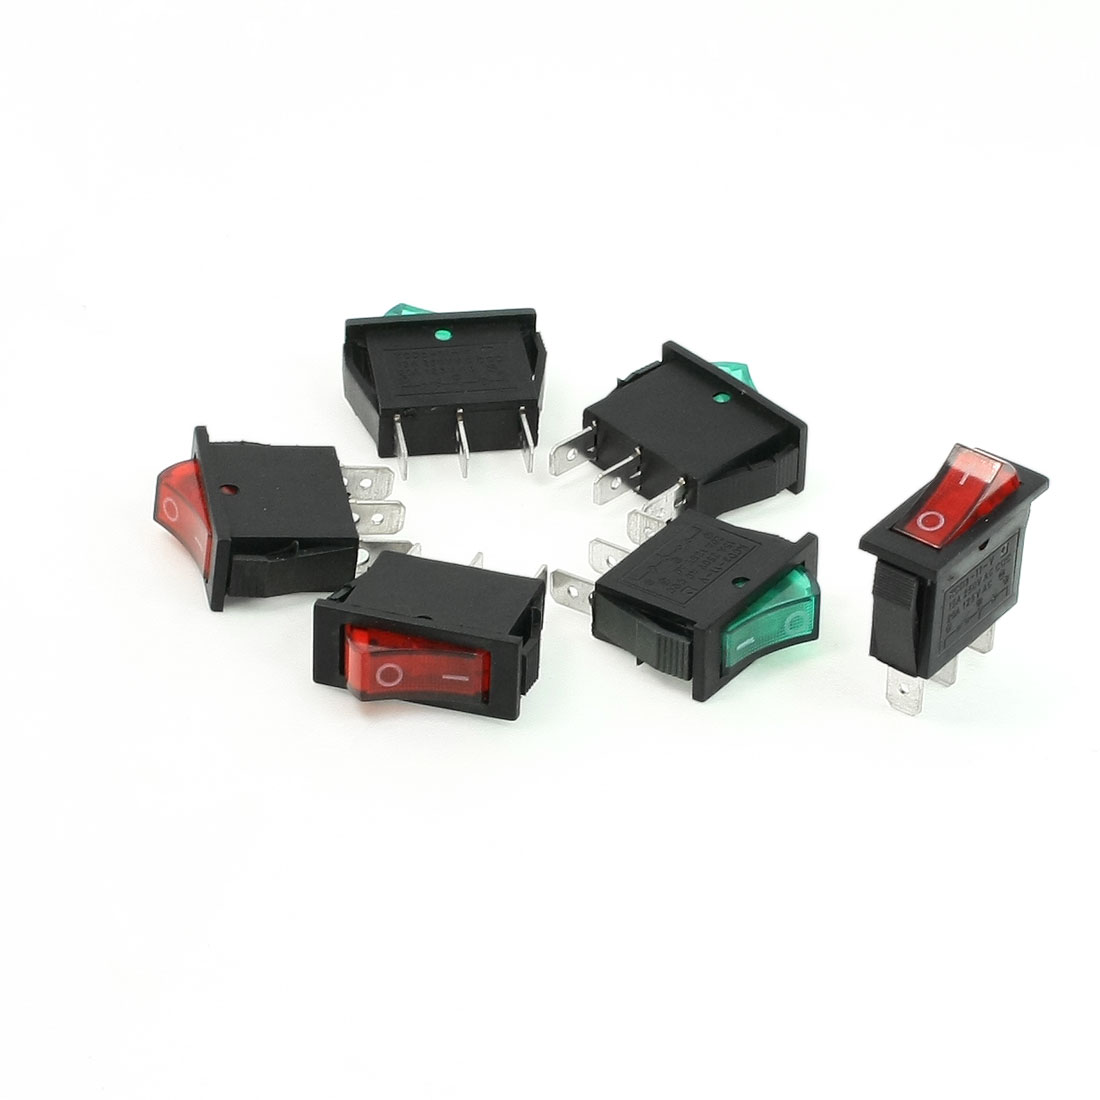 6 Pcs AC 15A 250V 125V 20A SPST On/Off Green Red Neon Light Rocker Switch